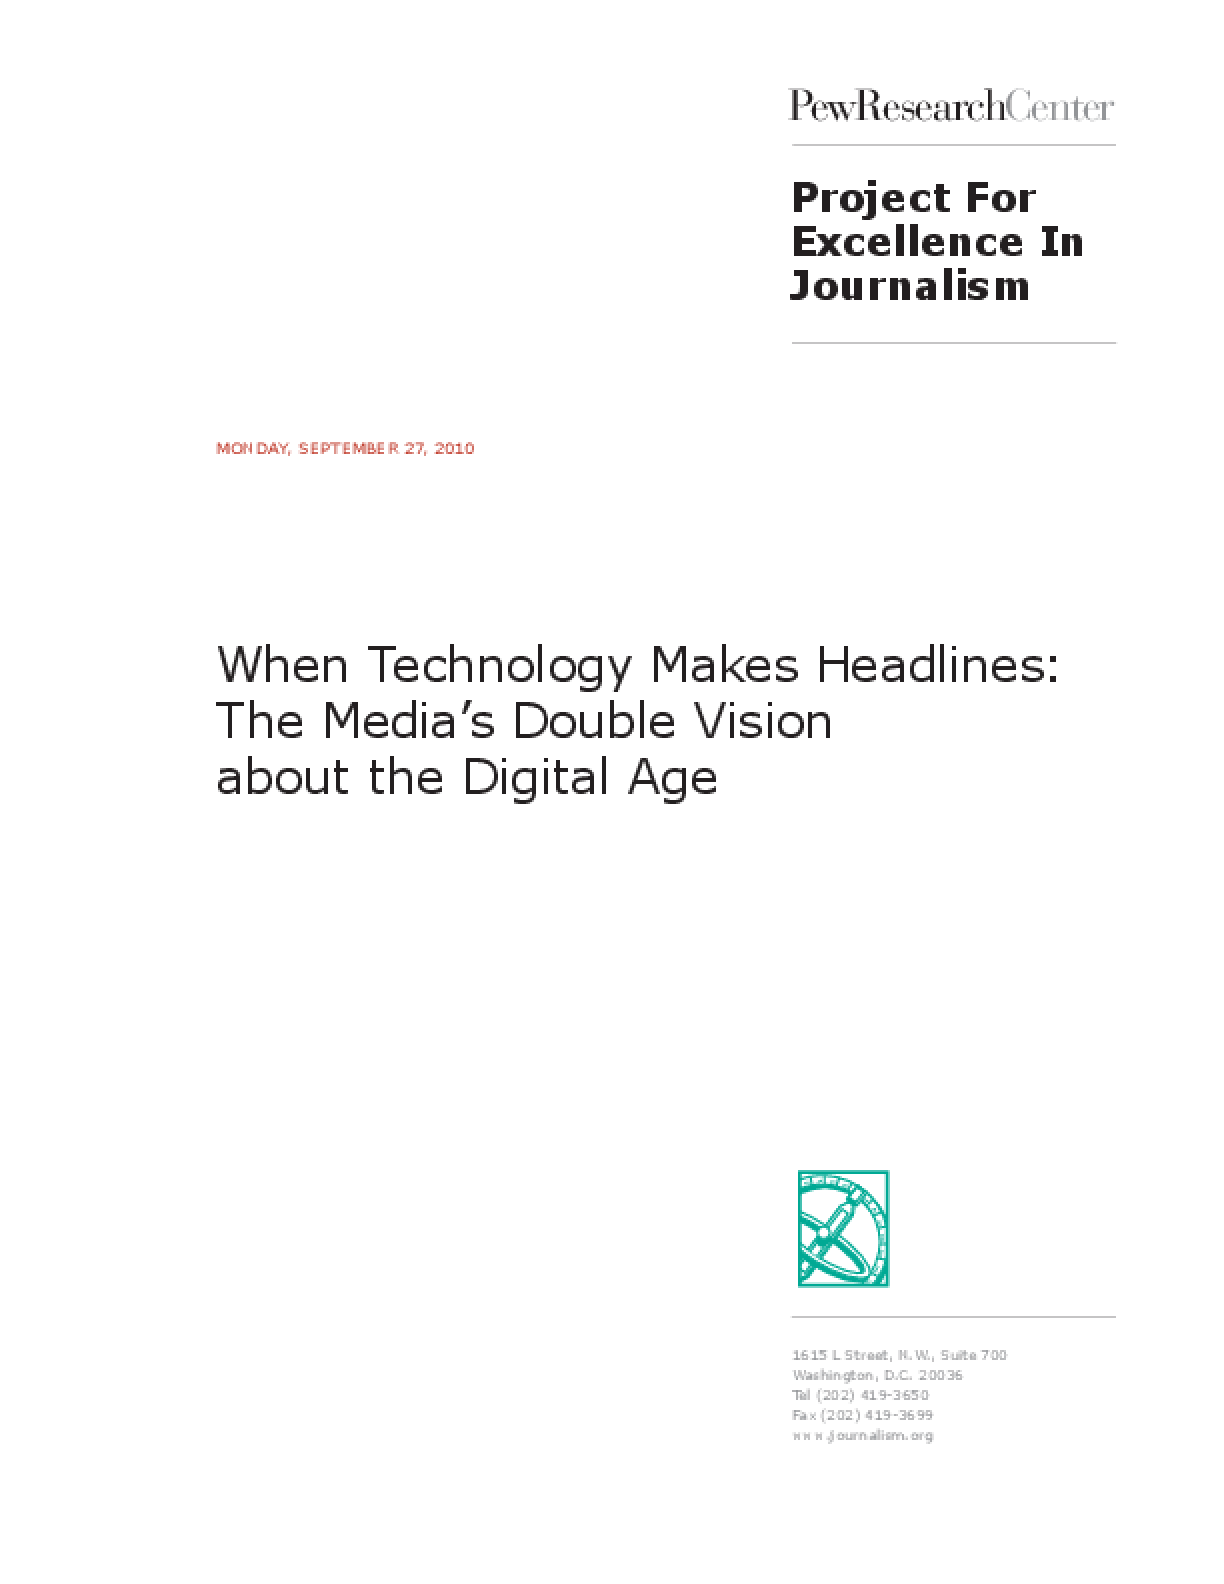 When Technology Makes Headlines: The Media's Double Vision About the Digital Age